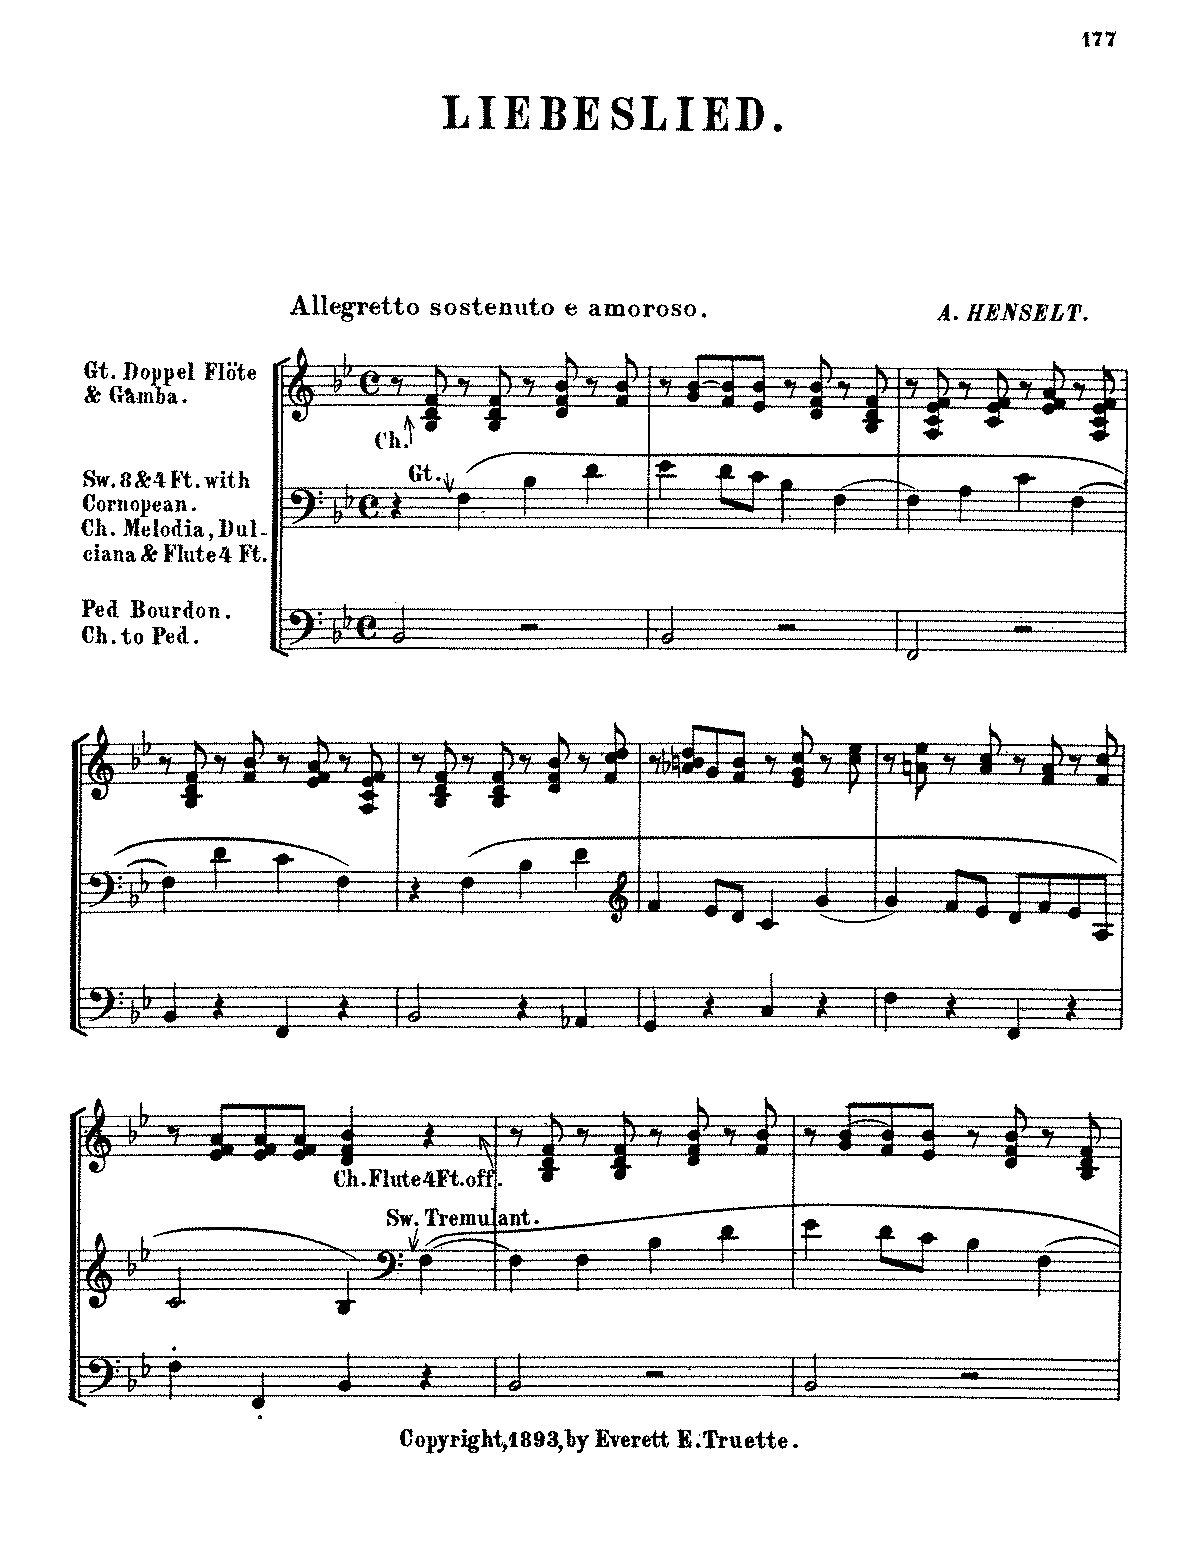 PMLP08091-AHenselt 12 Etudes, Op.5 No.11 Liebeslied for Organ.pdf